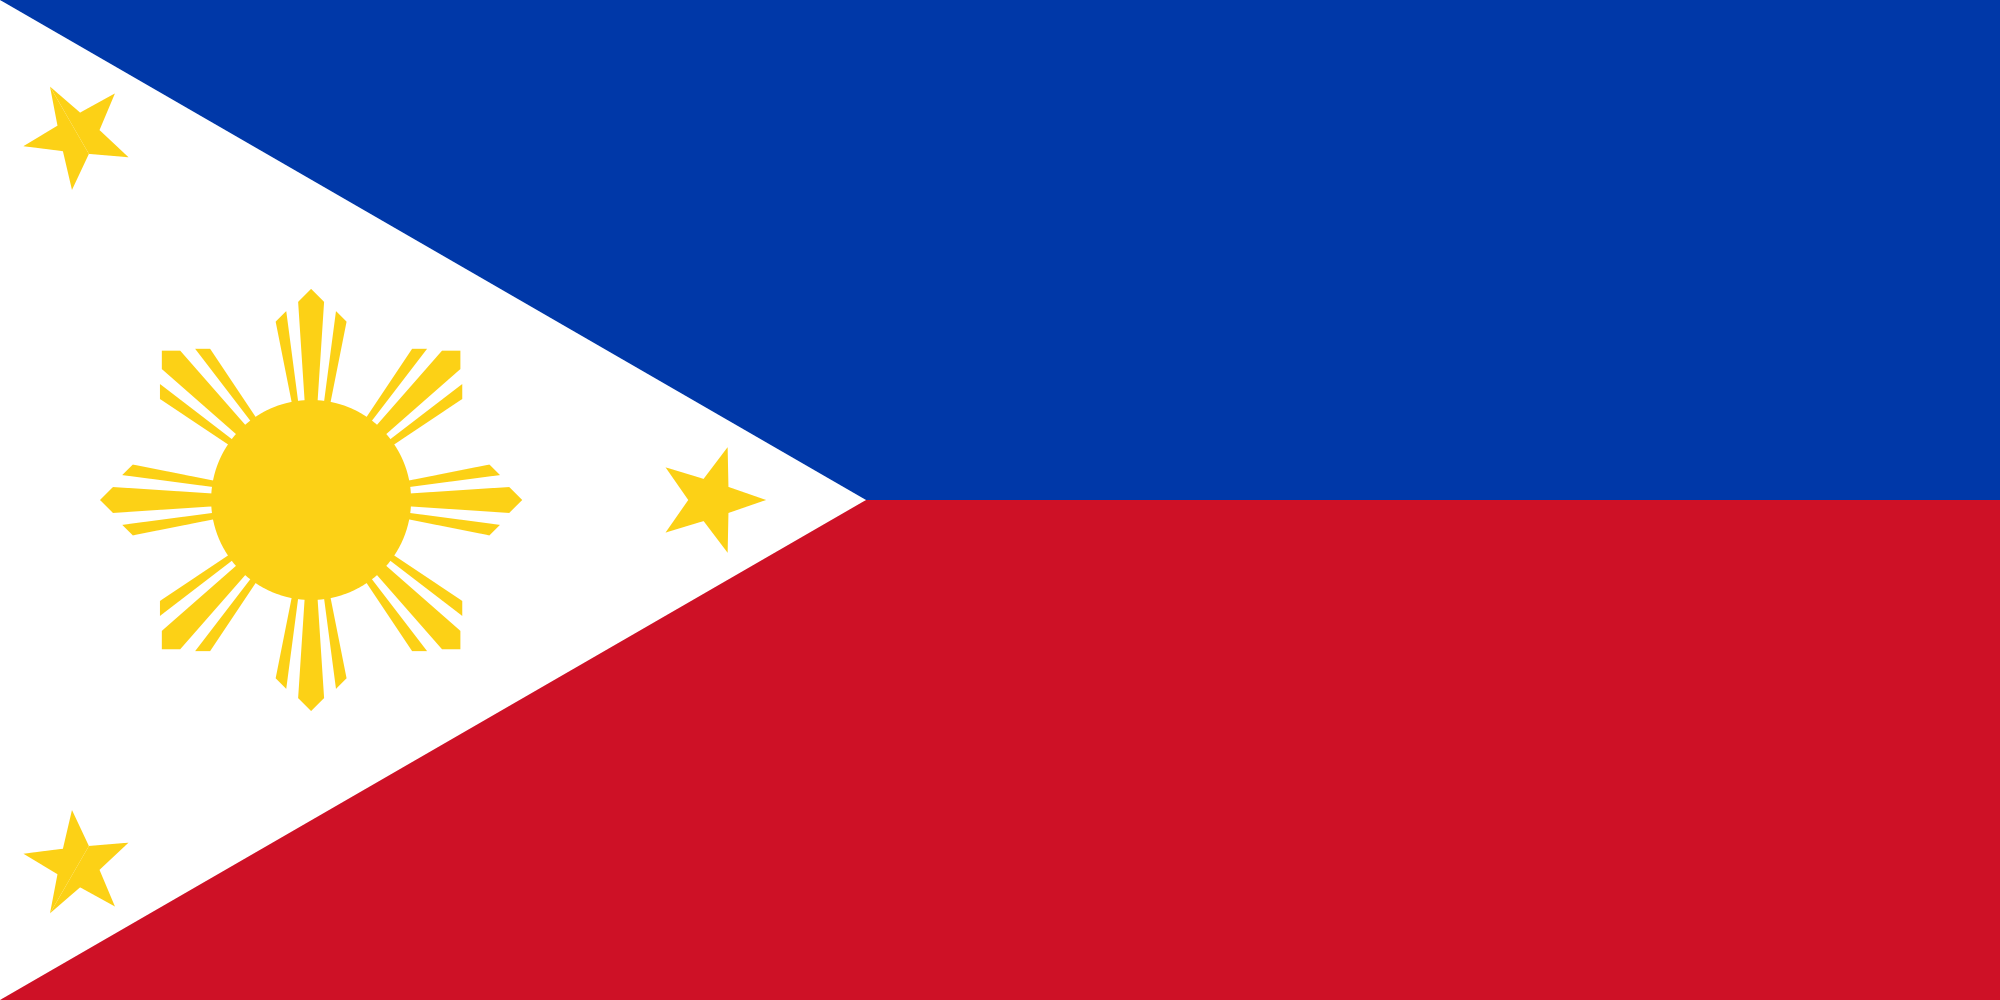 - Philippines - eCurrency Mint and Rizal to launch digital cash in Philippines